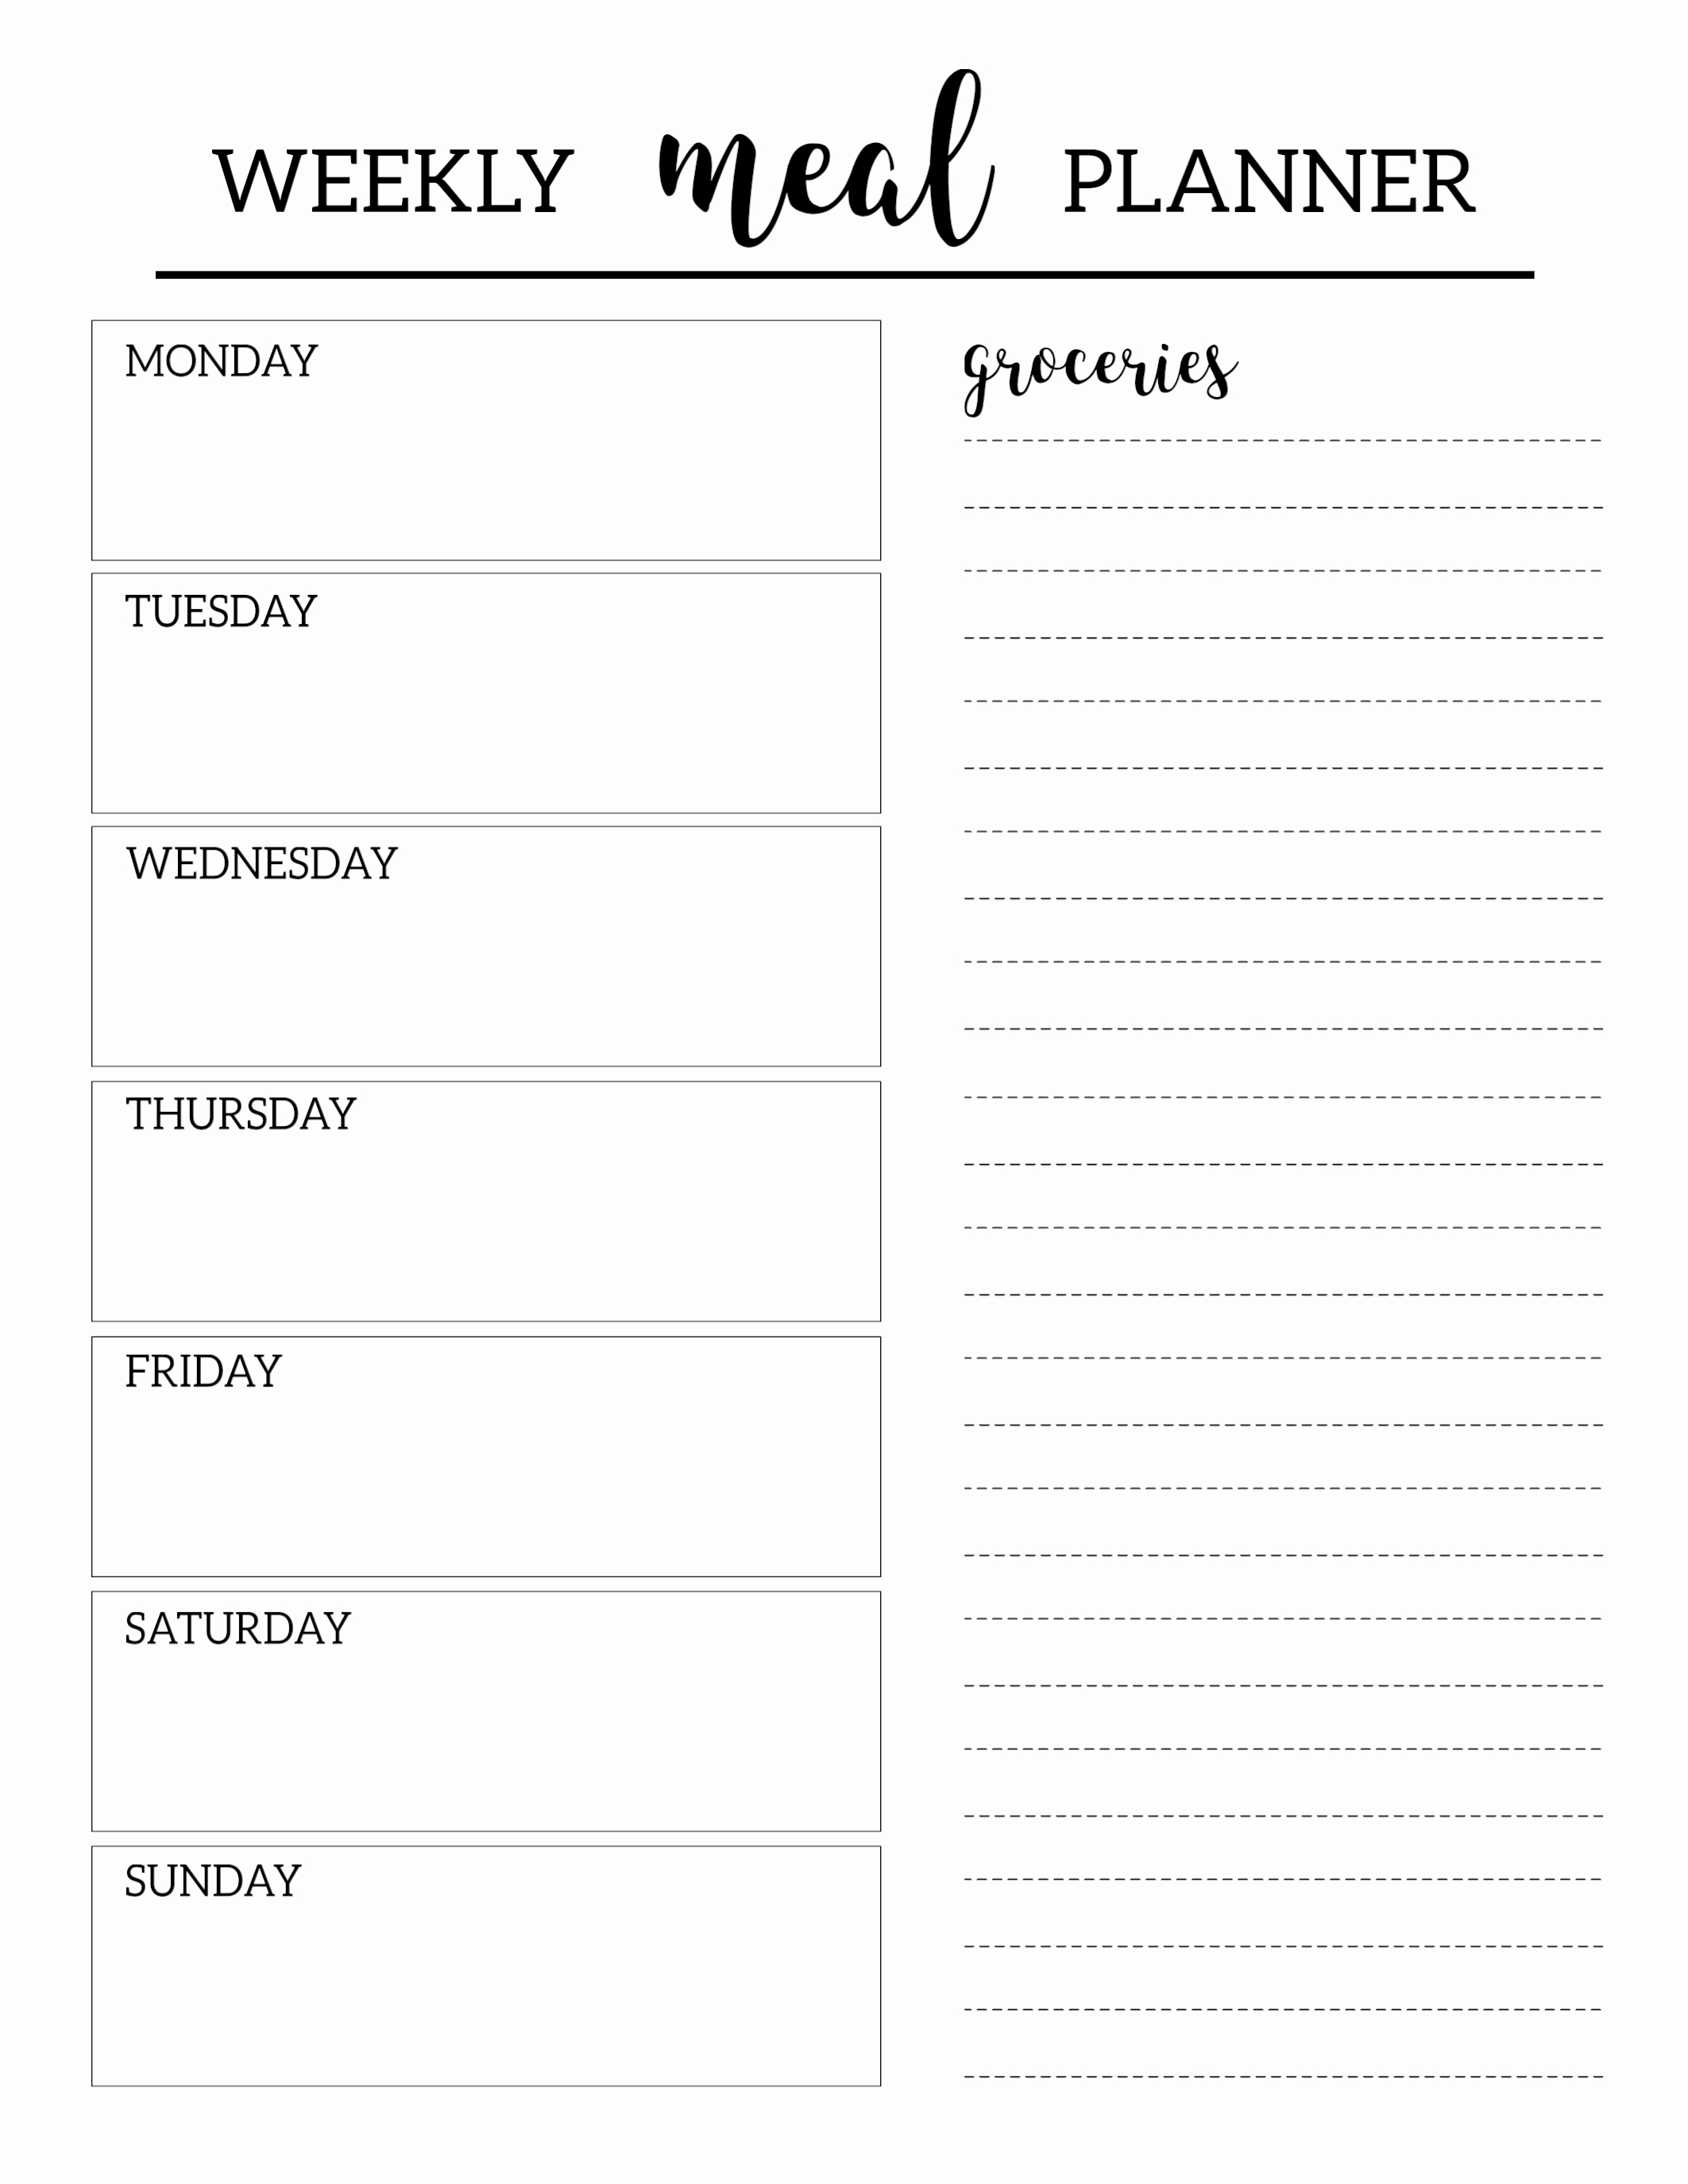 Free Meal Planner Template Elegant Free Printable Meal Planner Template Paper Trail Design